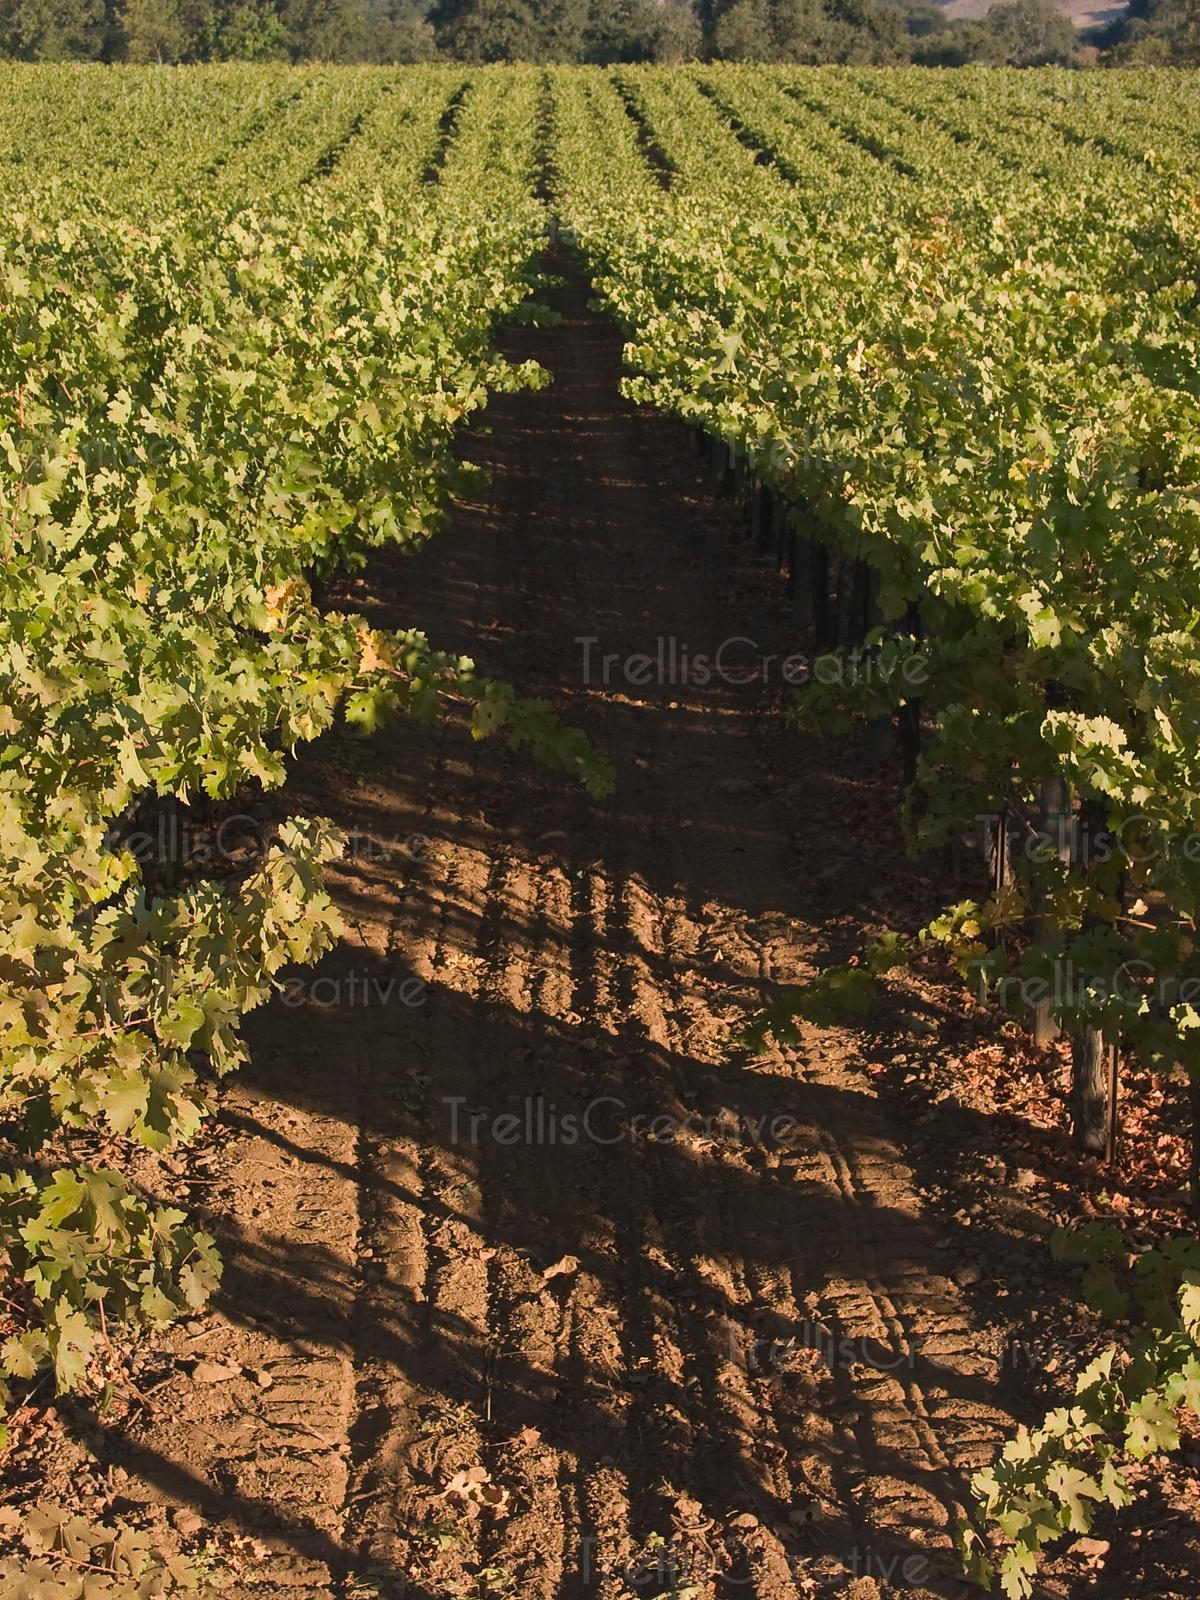 Looking out across the top of grape vine canopy & Trellis Creative | Vines u0026 Vineyard Landscapes